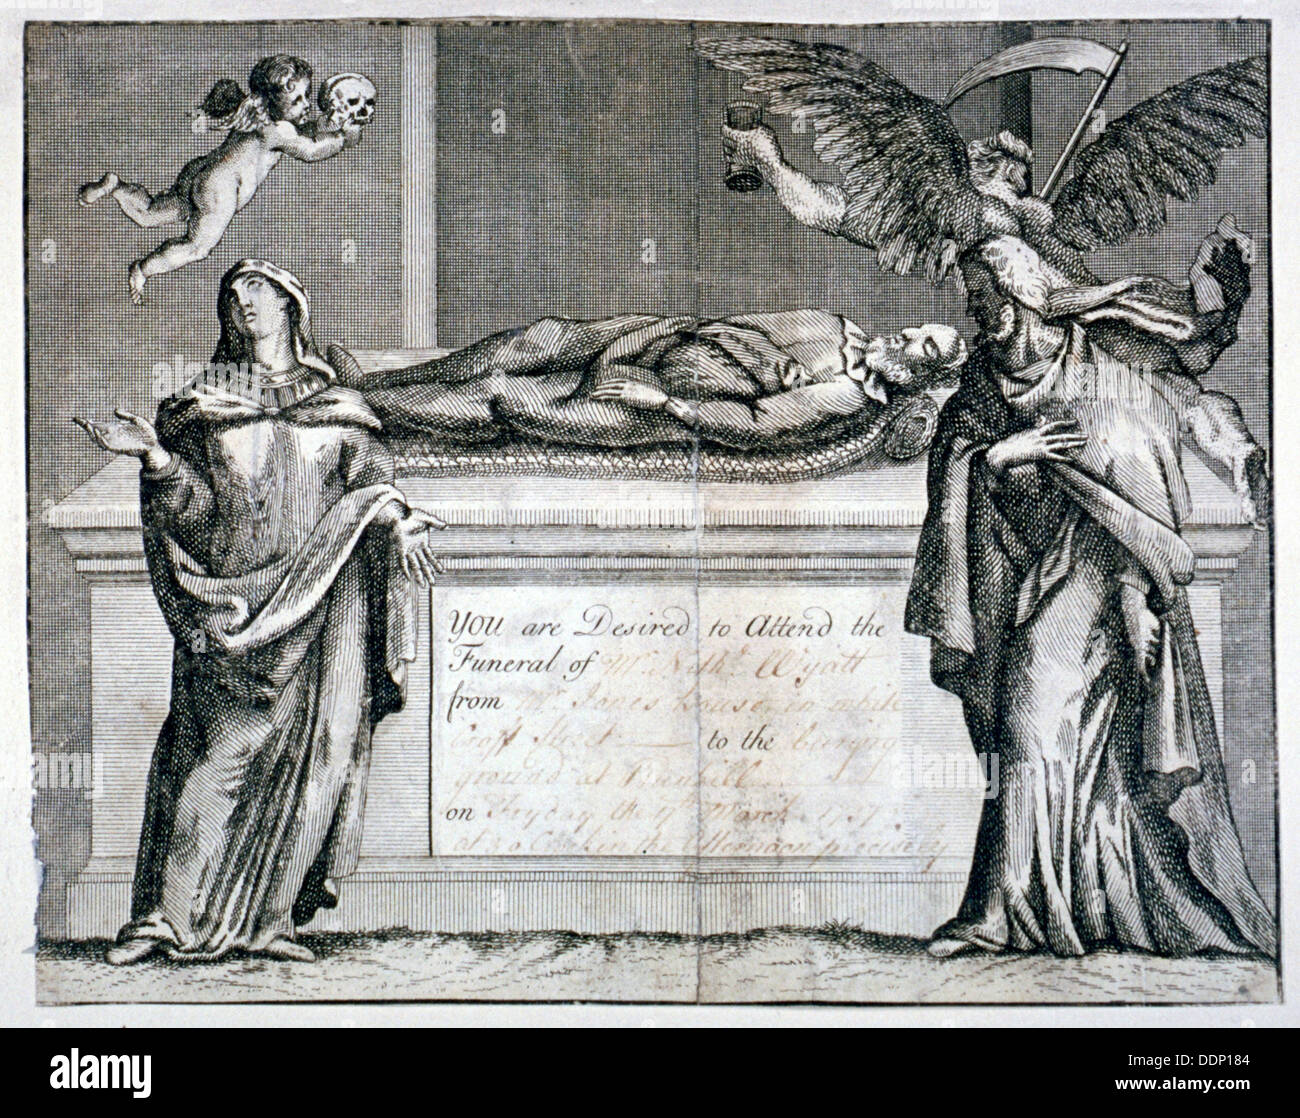 Invitation card to a funeral at Bunhill Fields in 1737. Artist: Anon - Stock Image